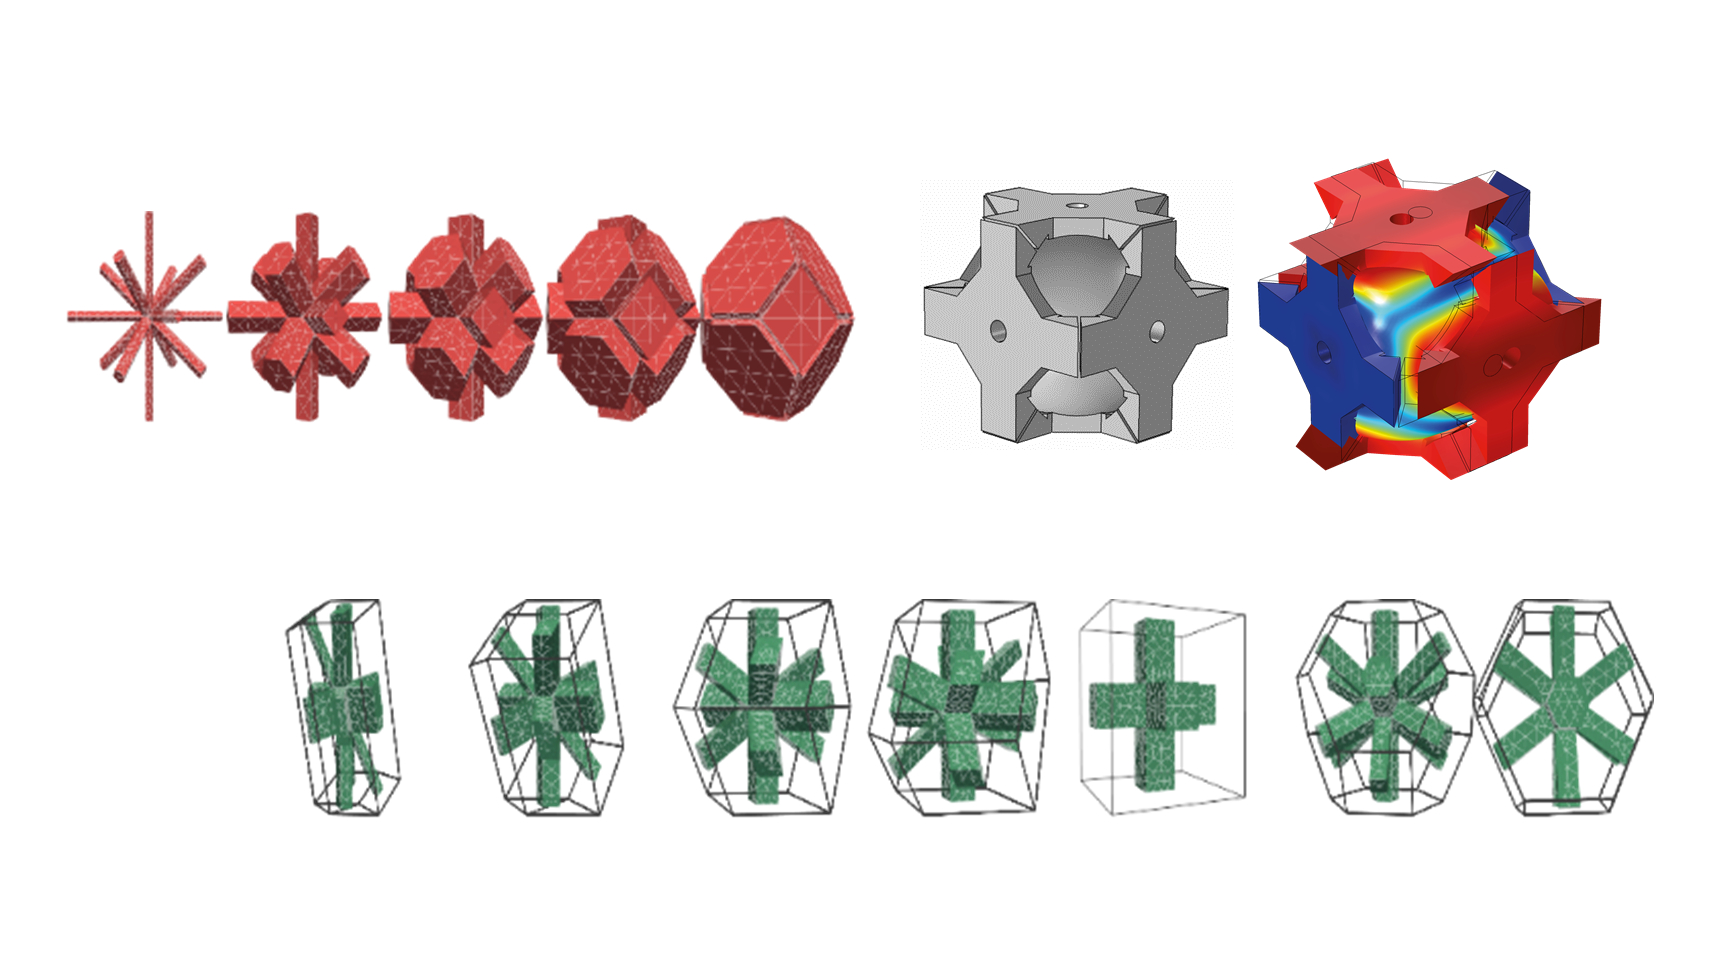 3D graphic representations of various crystalline structures